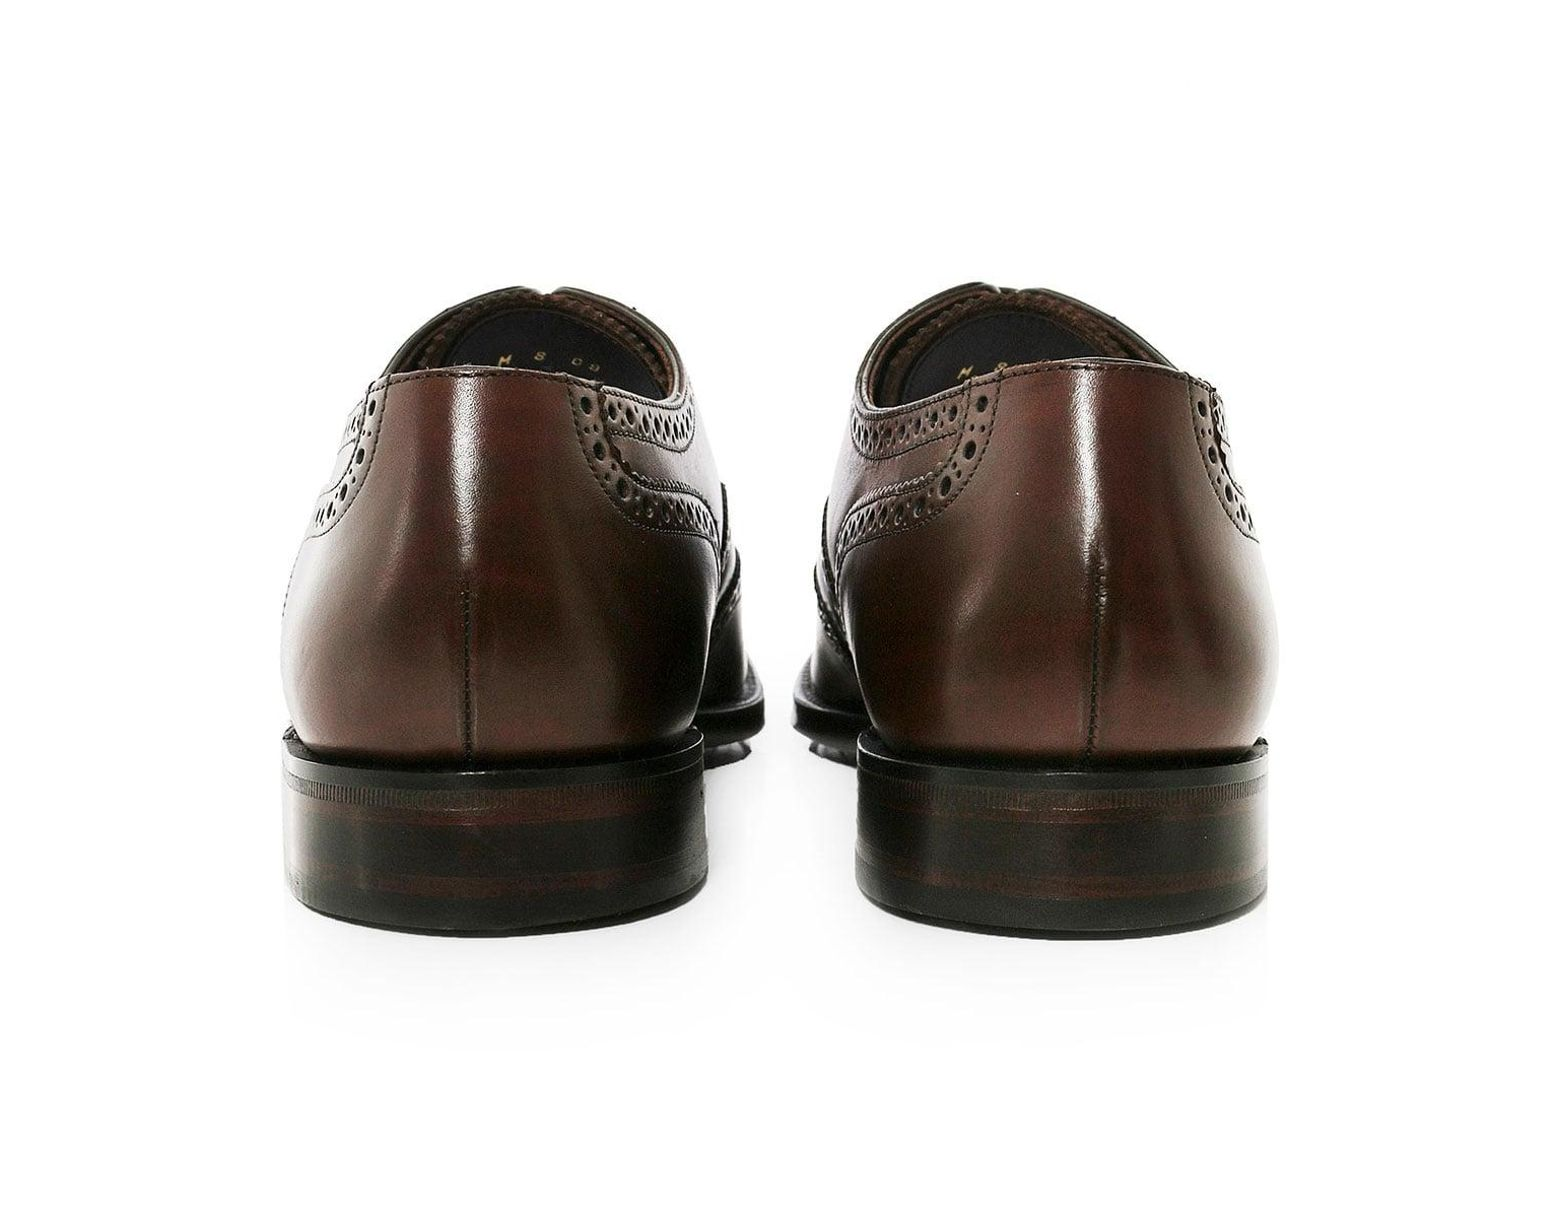 9144d6dd00f0 Loake Calf Leather Buckingham Brogues in Brown for Men - Lyst